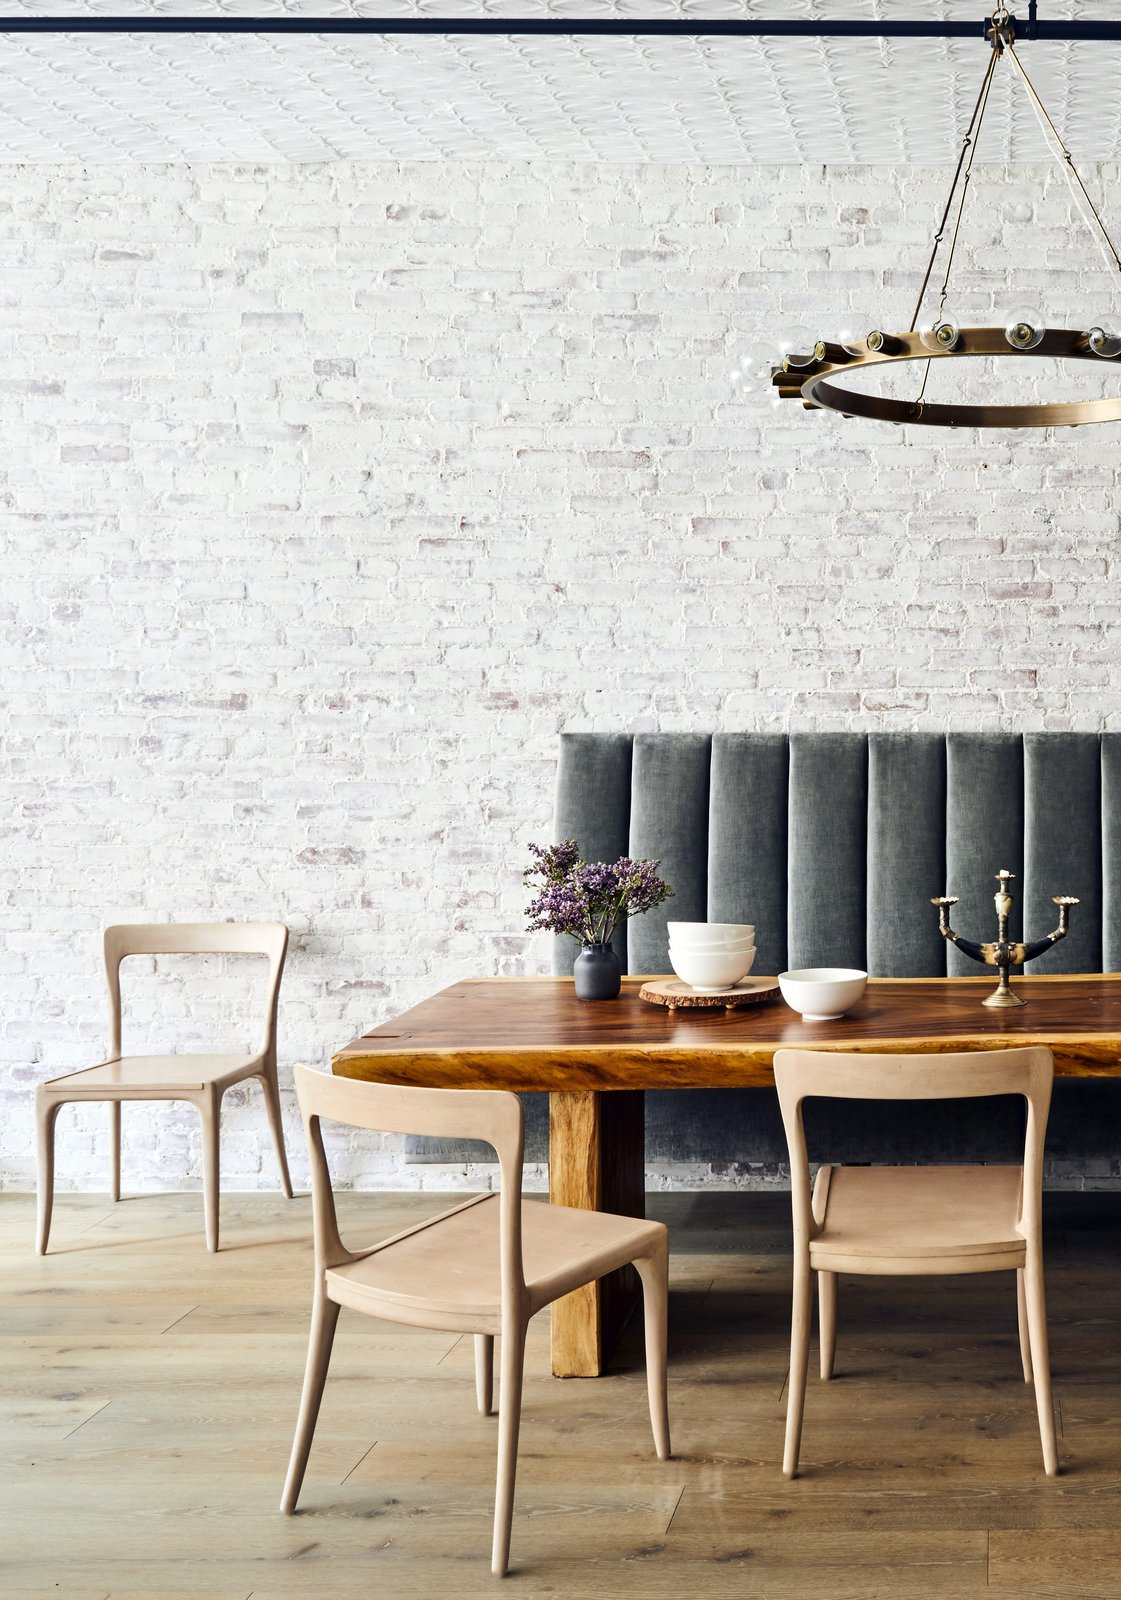 Dining, Light Hardwood, Chair, Table, Bench, and Pendant A custom designed built-in tufted banquette creates a soft, lush seating area at the live edge dining table. The velvet upholstery contrasts the exposed white-washed original brick in both texture and era. Overhead a brass chandelier with exposed Edison bulbs references the former Swan Incandescent Electric Light Co.  which occupied the loft after construction was completed in 1897.  Best Dining Bench Light Hardwood Pendant Photos from Crosby Loft